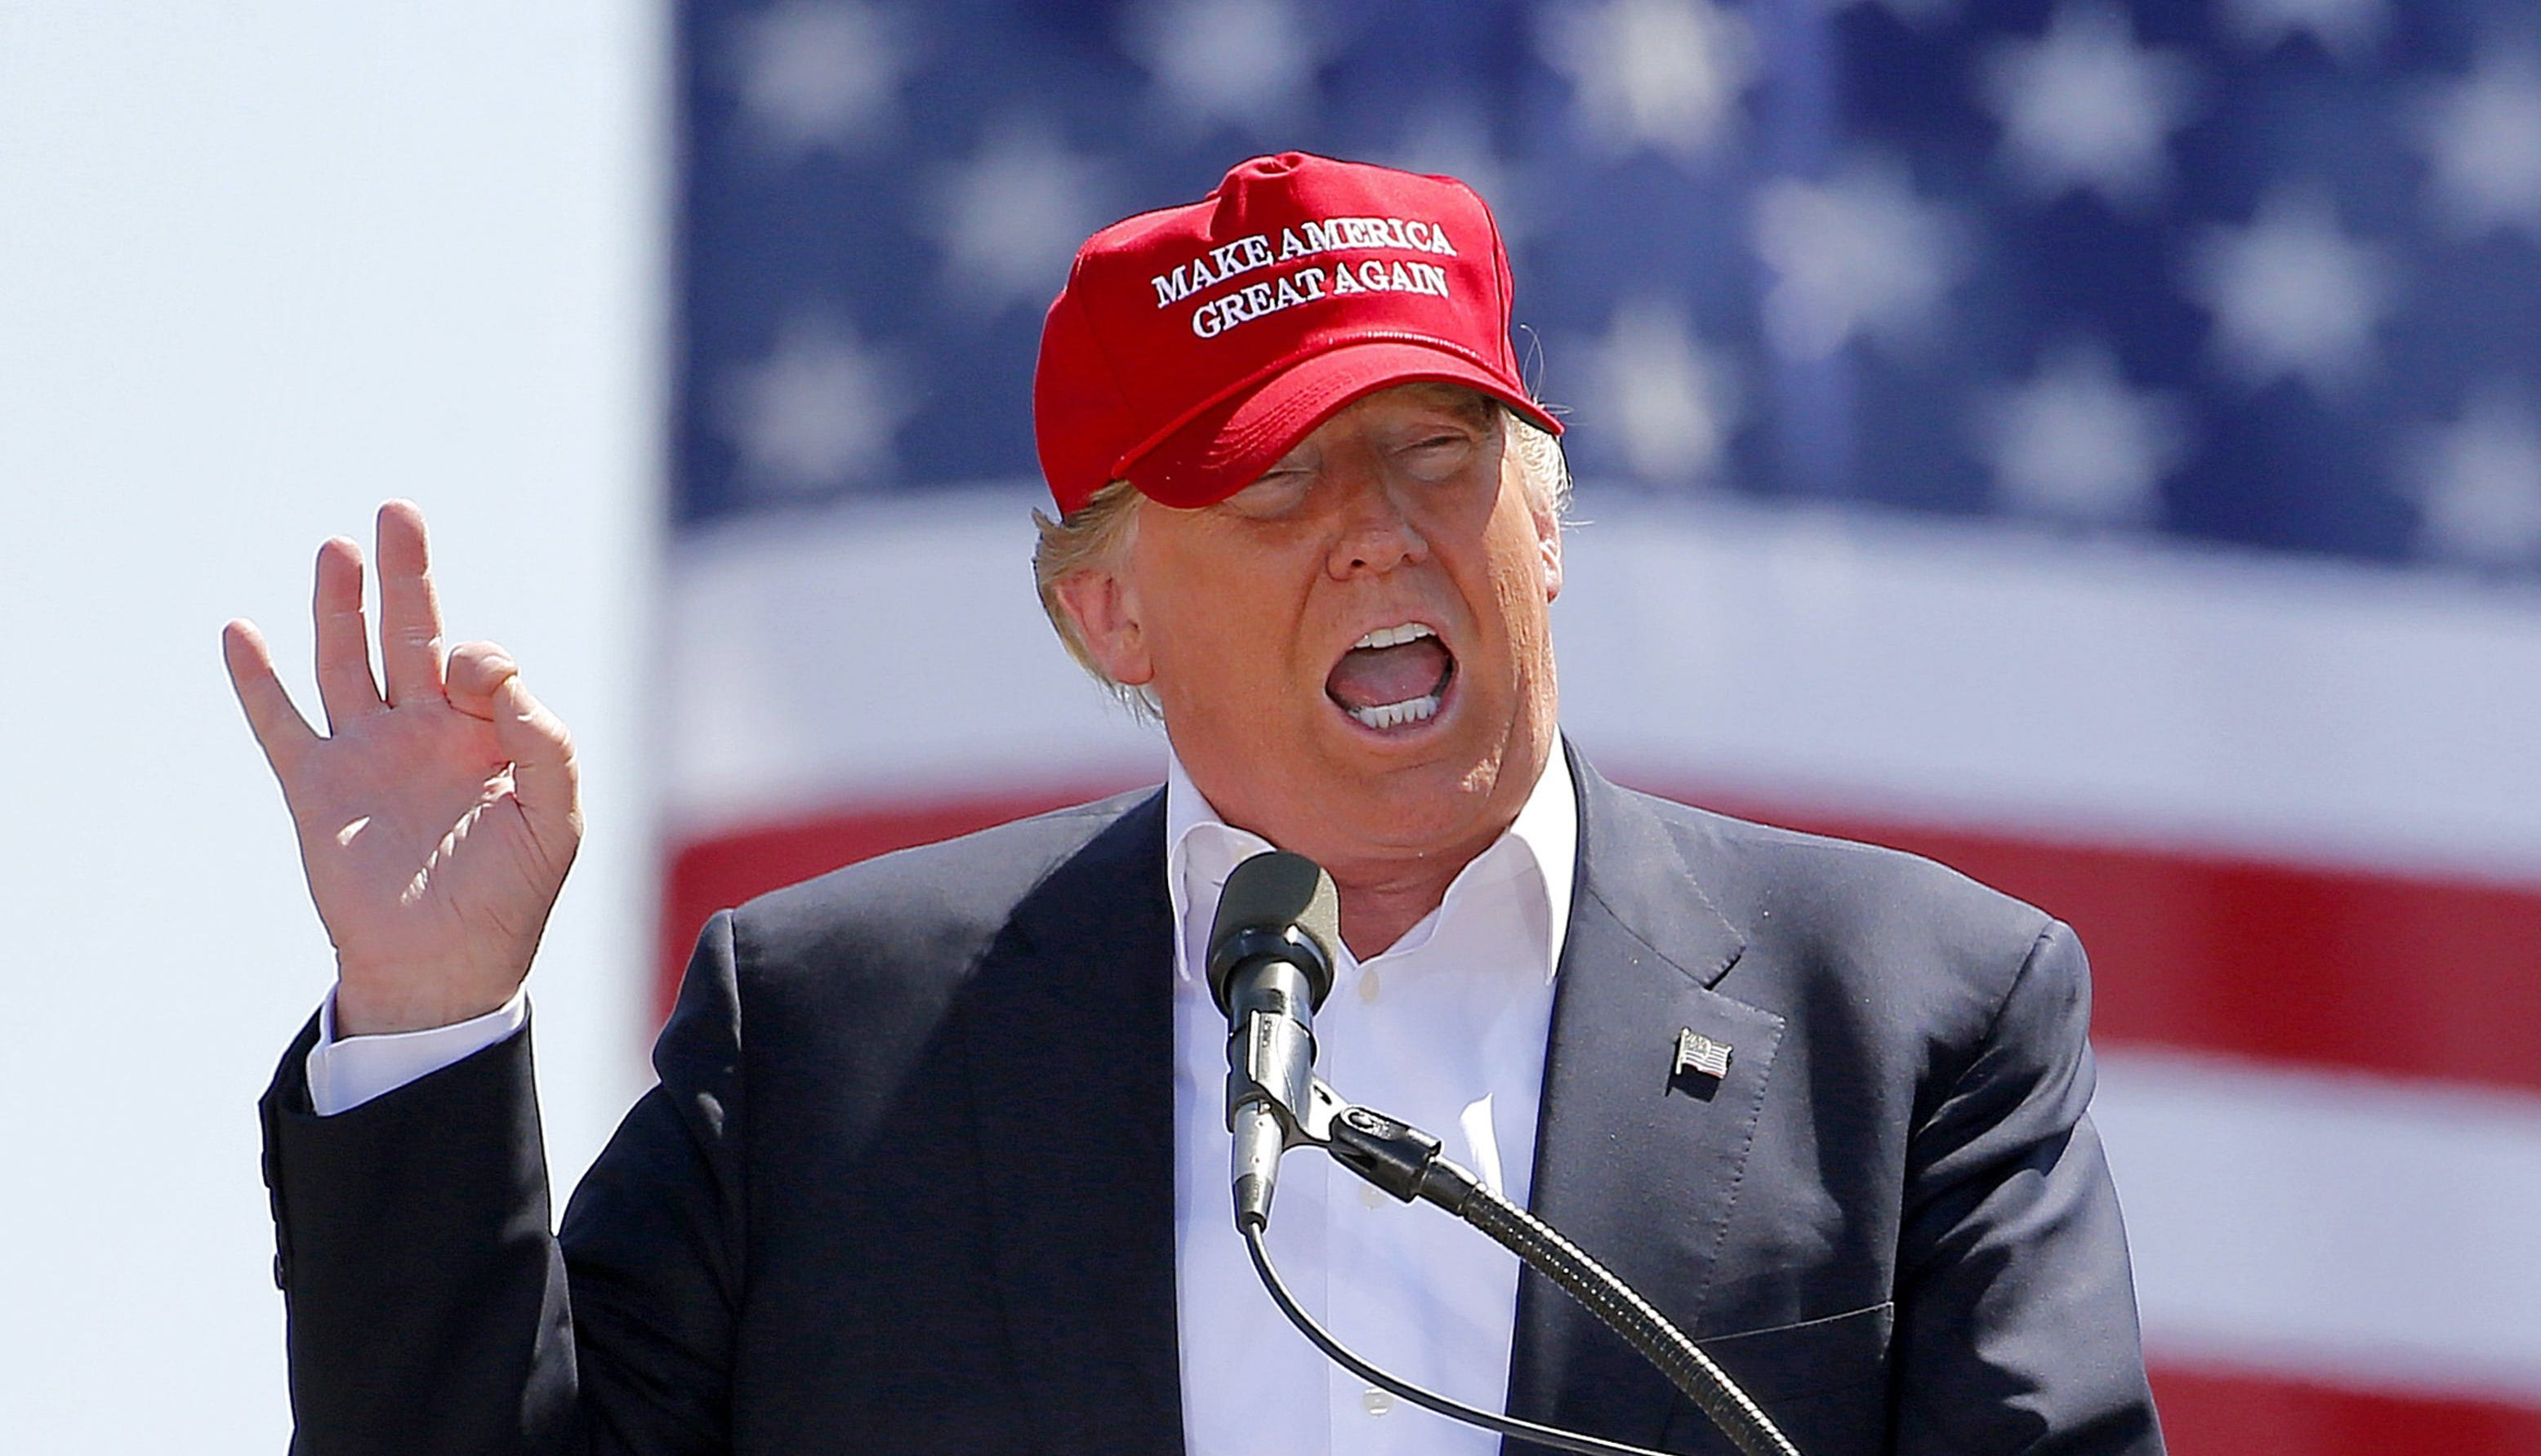 Donald Trump may have trouble winning Michigan in 2020